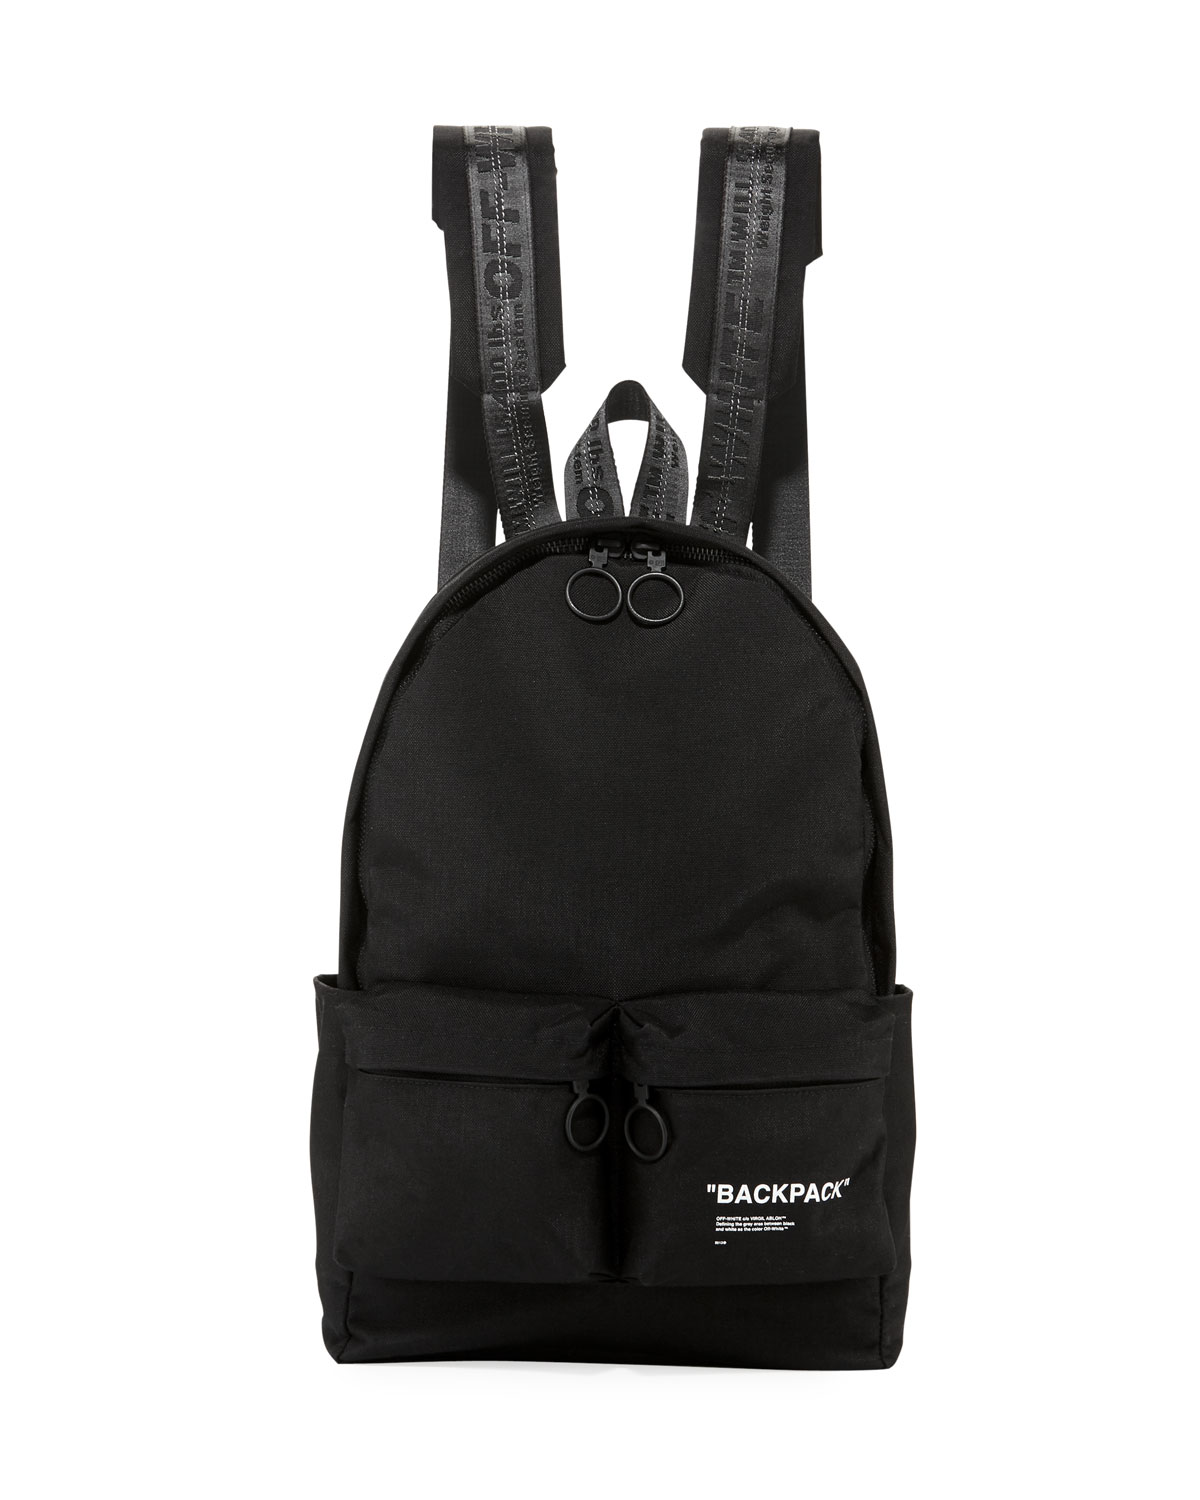 Black Off White Backpack Patmo Technologies Limited